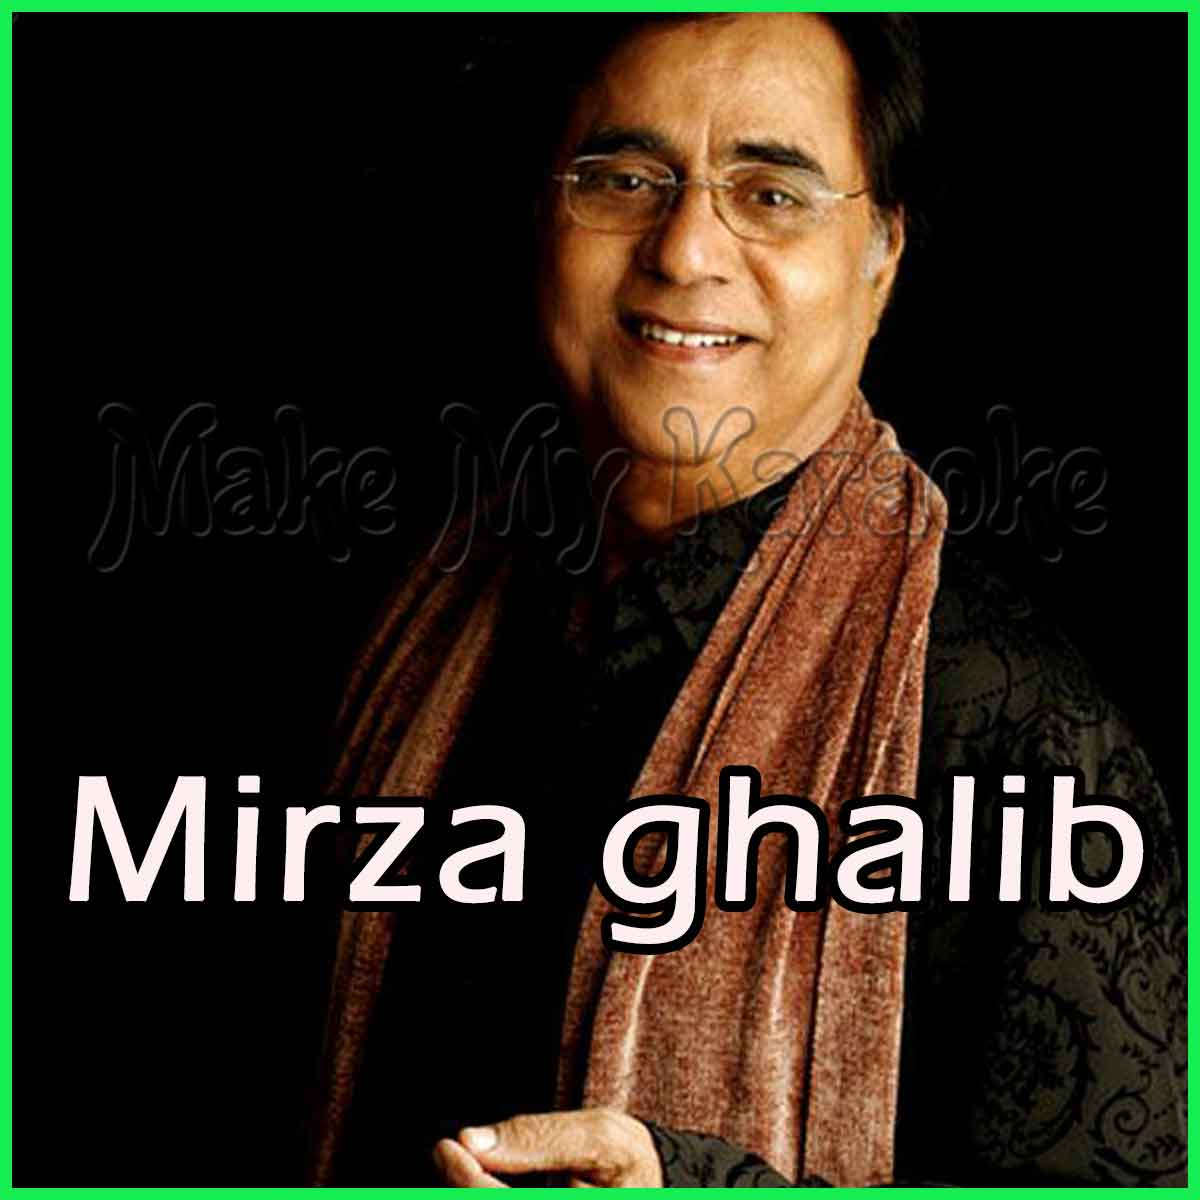 Mirza ghalib songs download: mirza ghalib mp3 songs online free on.